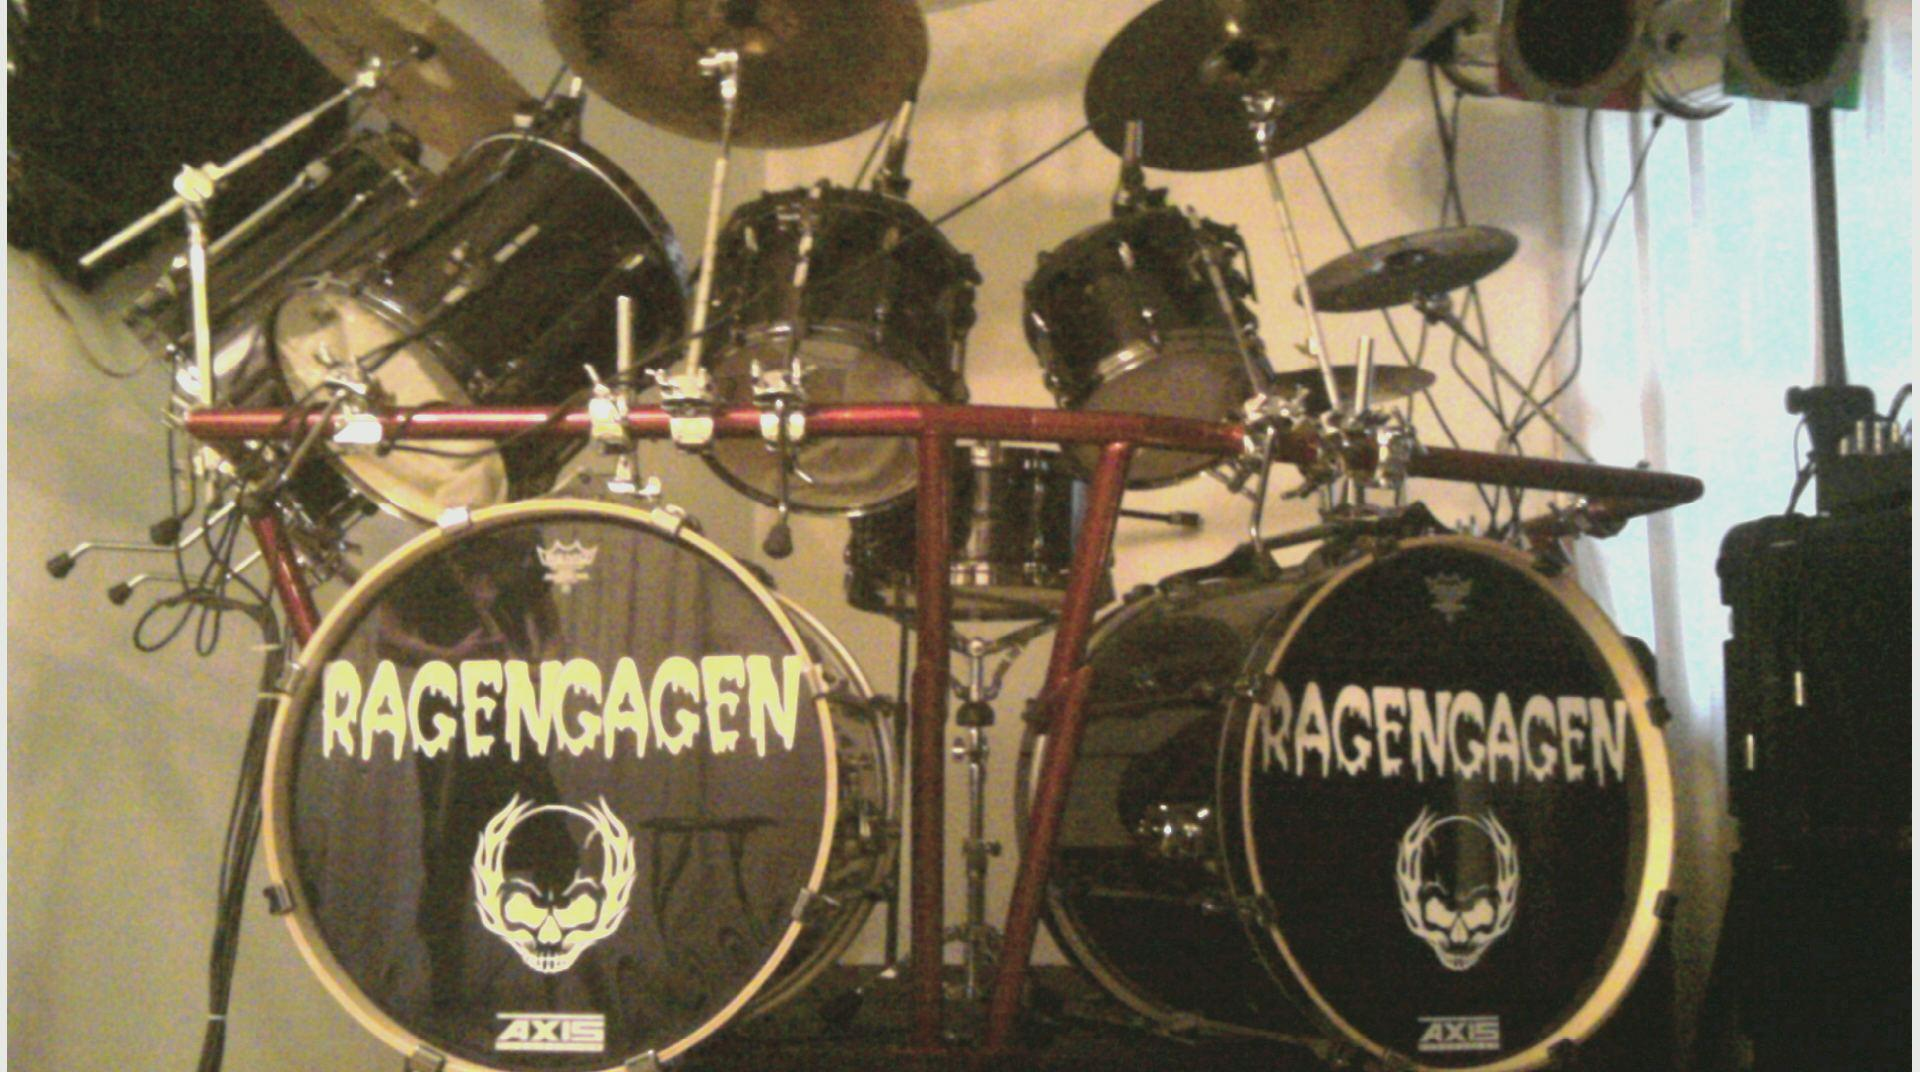 ragen gagen's drum set